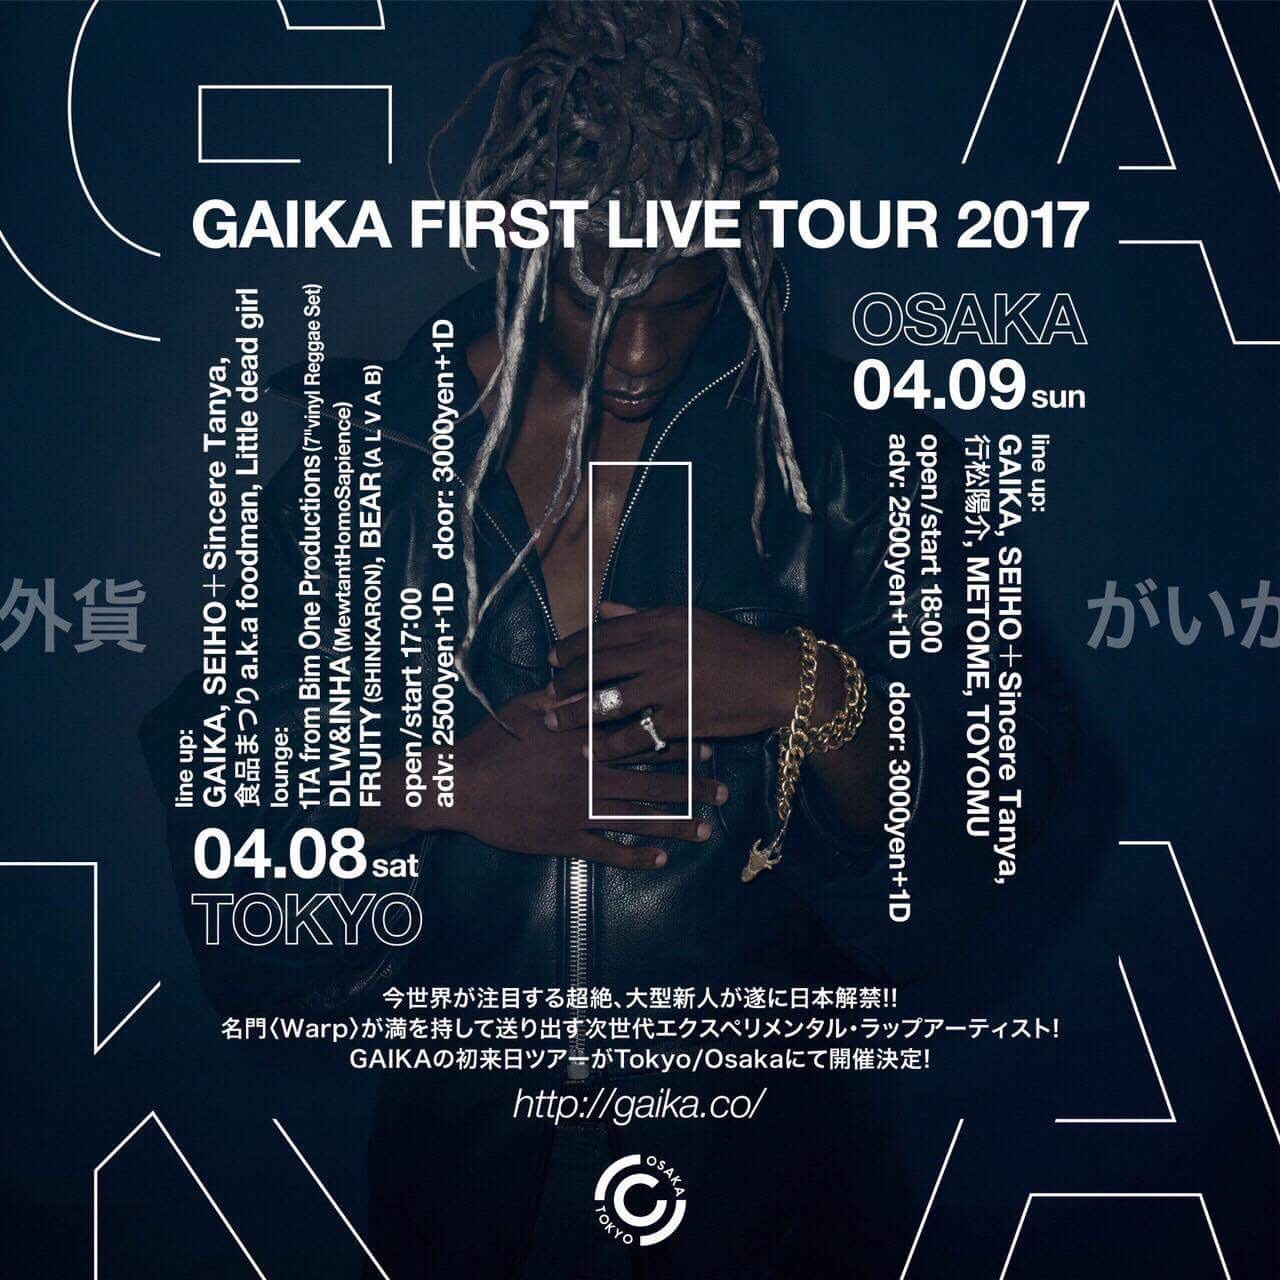 GAIKA FIRST LIVE TOUR 2017